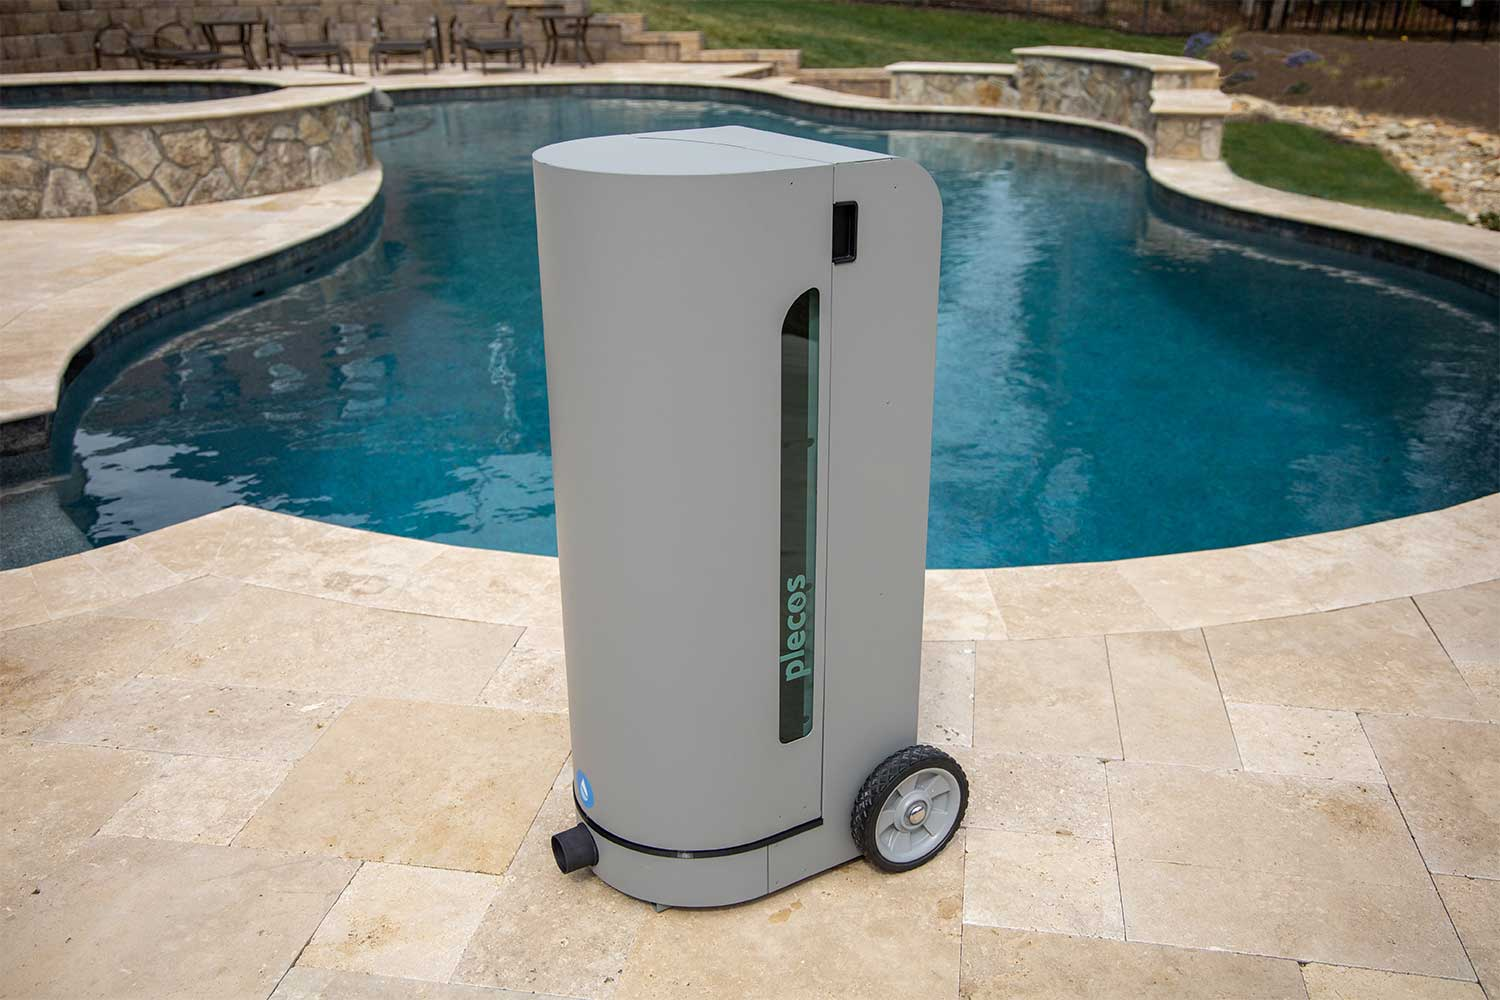 Image of CleanSweep product in front of a residential pool.